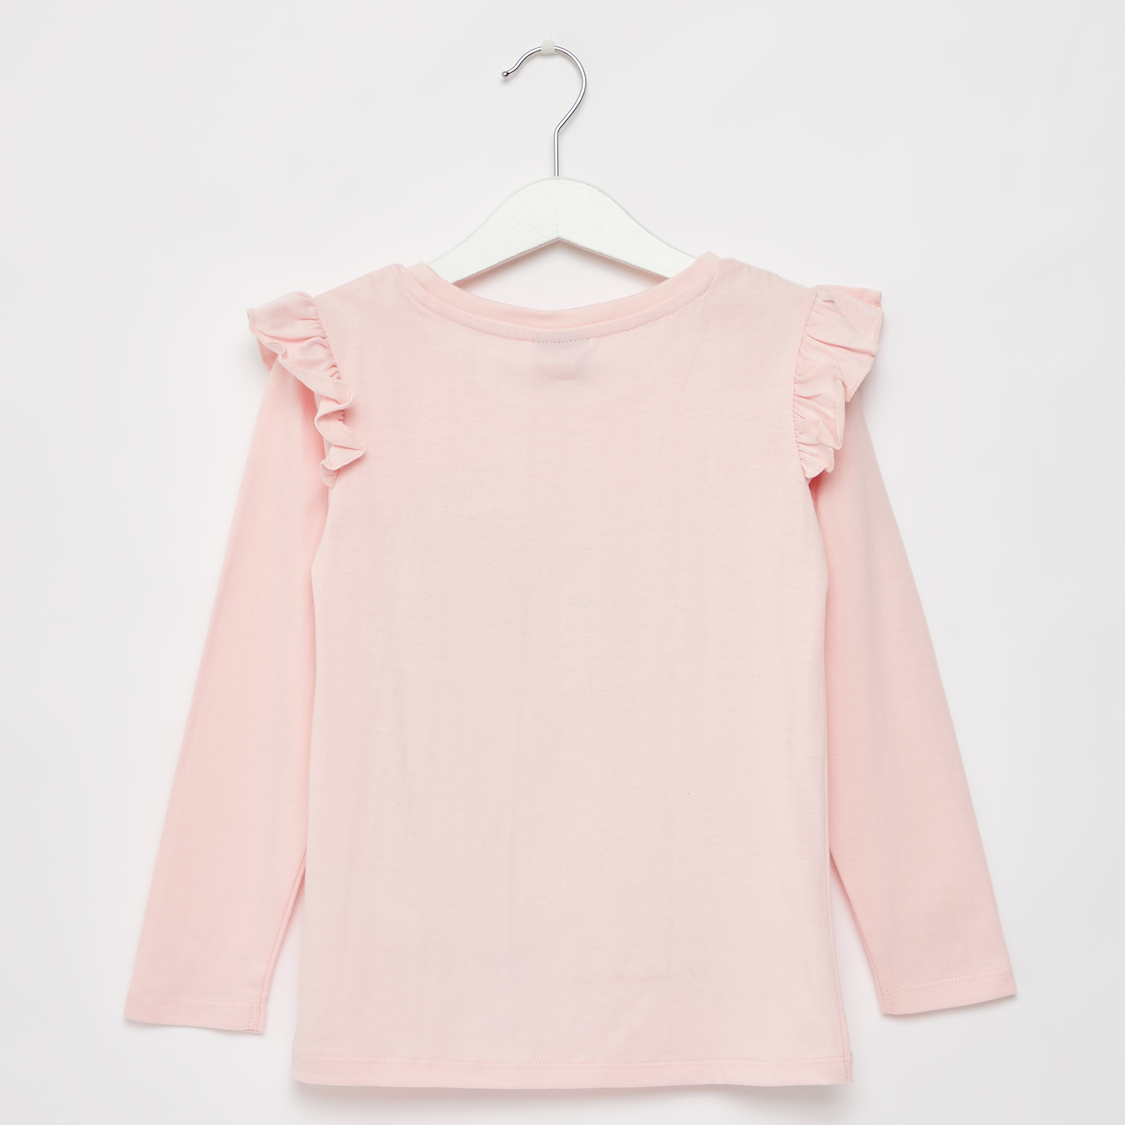 Princess Graphic Print T-shirt with Round Neck and Long Sleeves